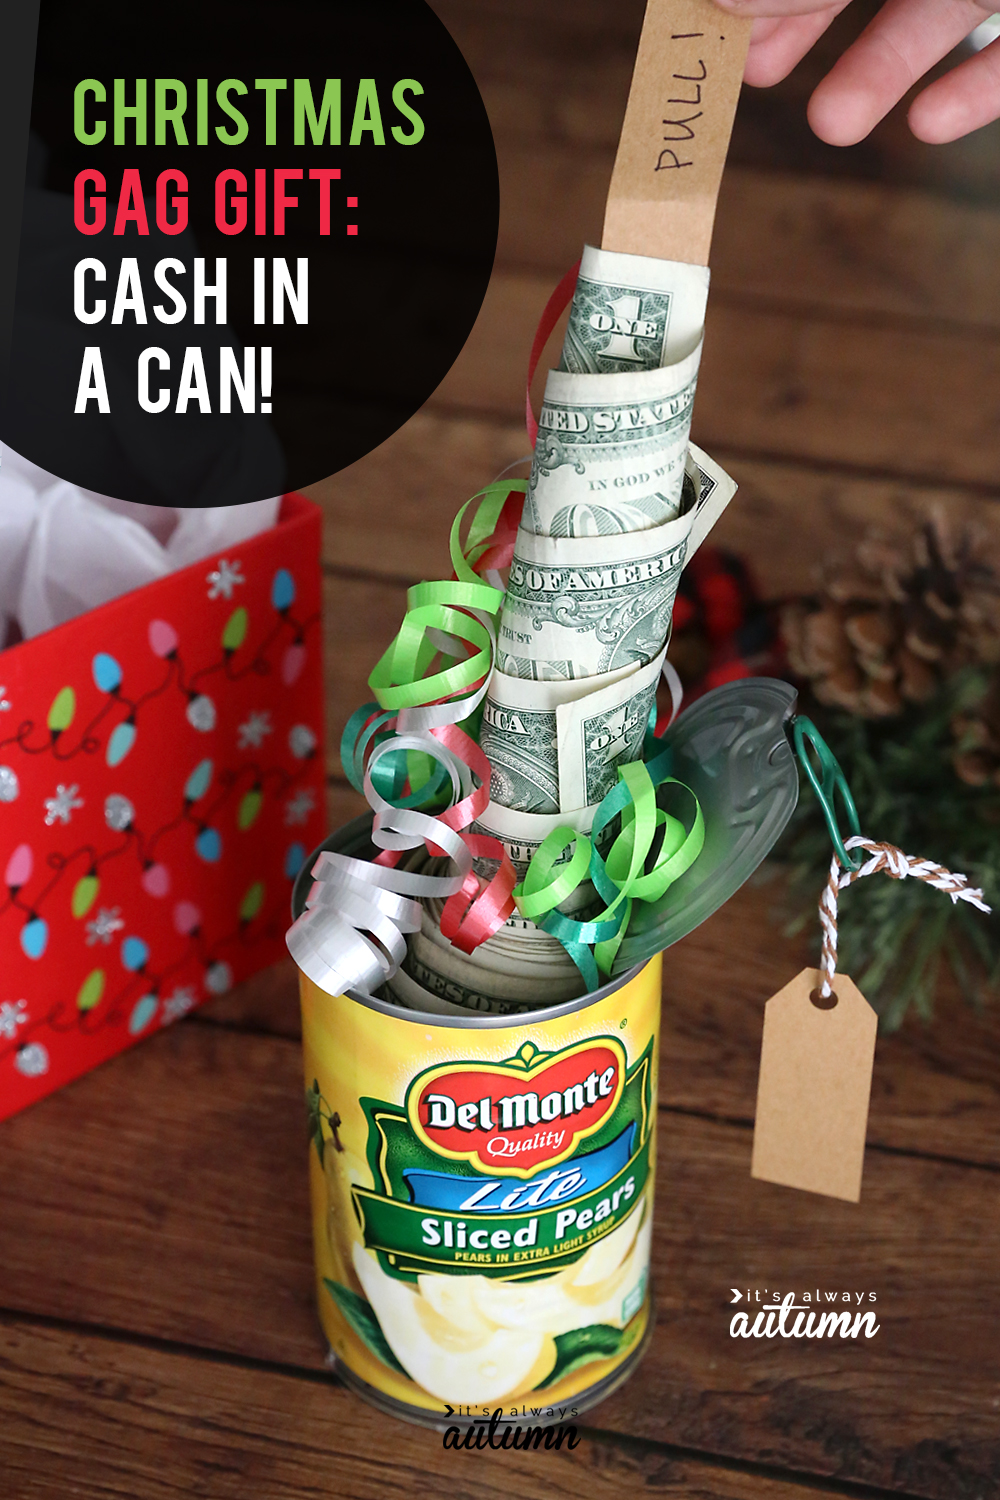 Christmas cash in a can gift, with roll of money coming out of a can of pears